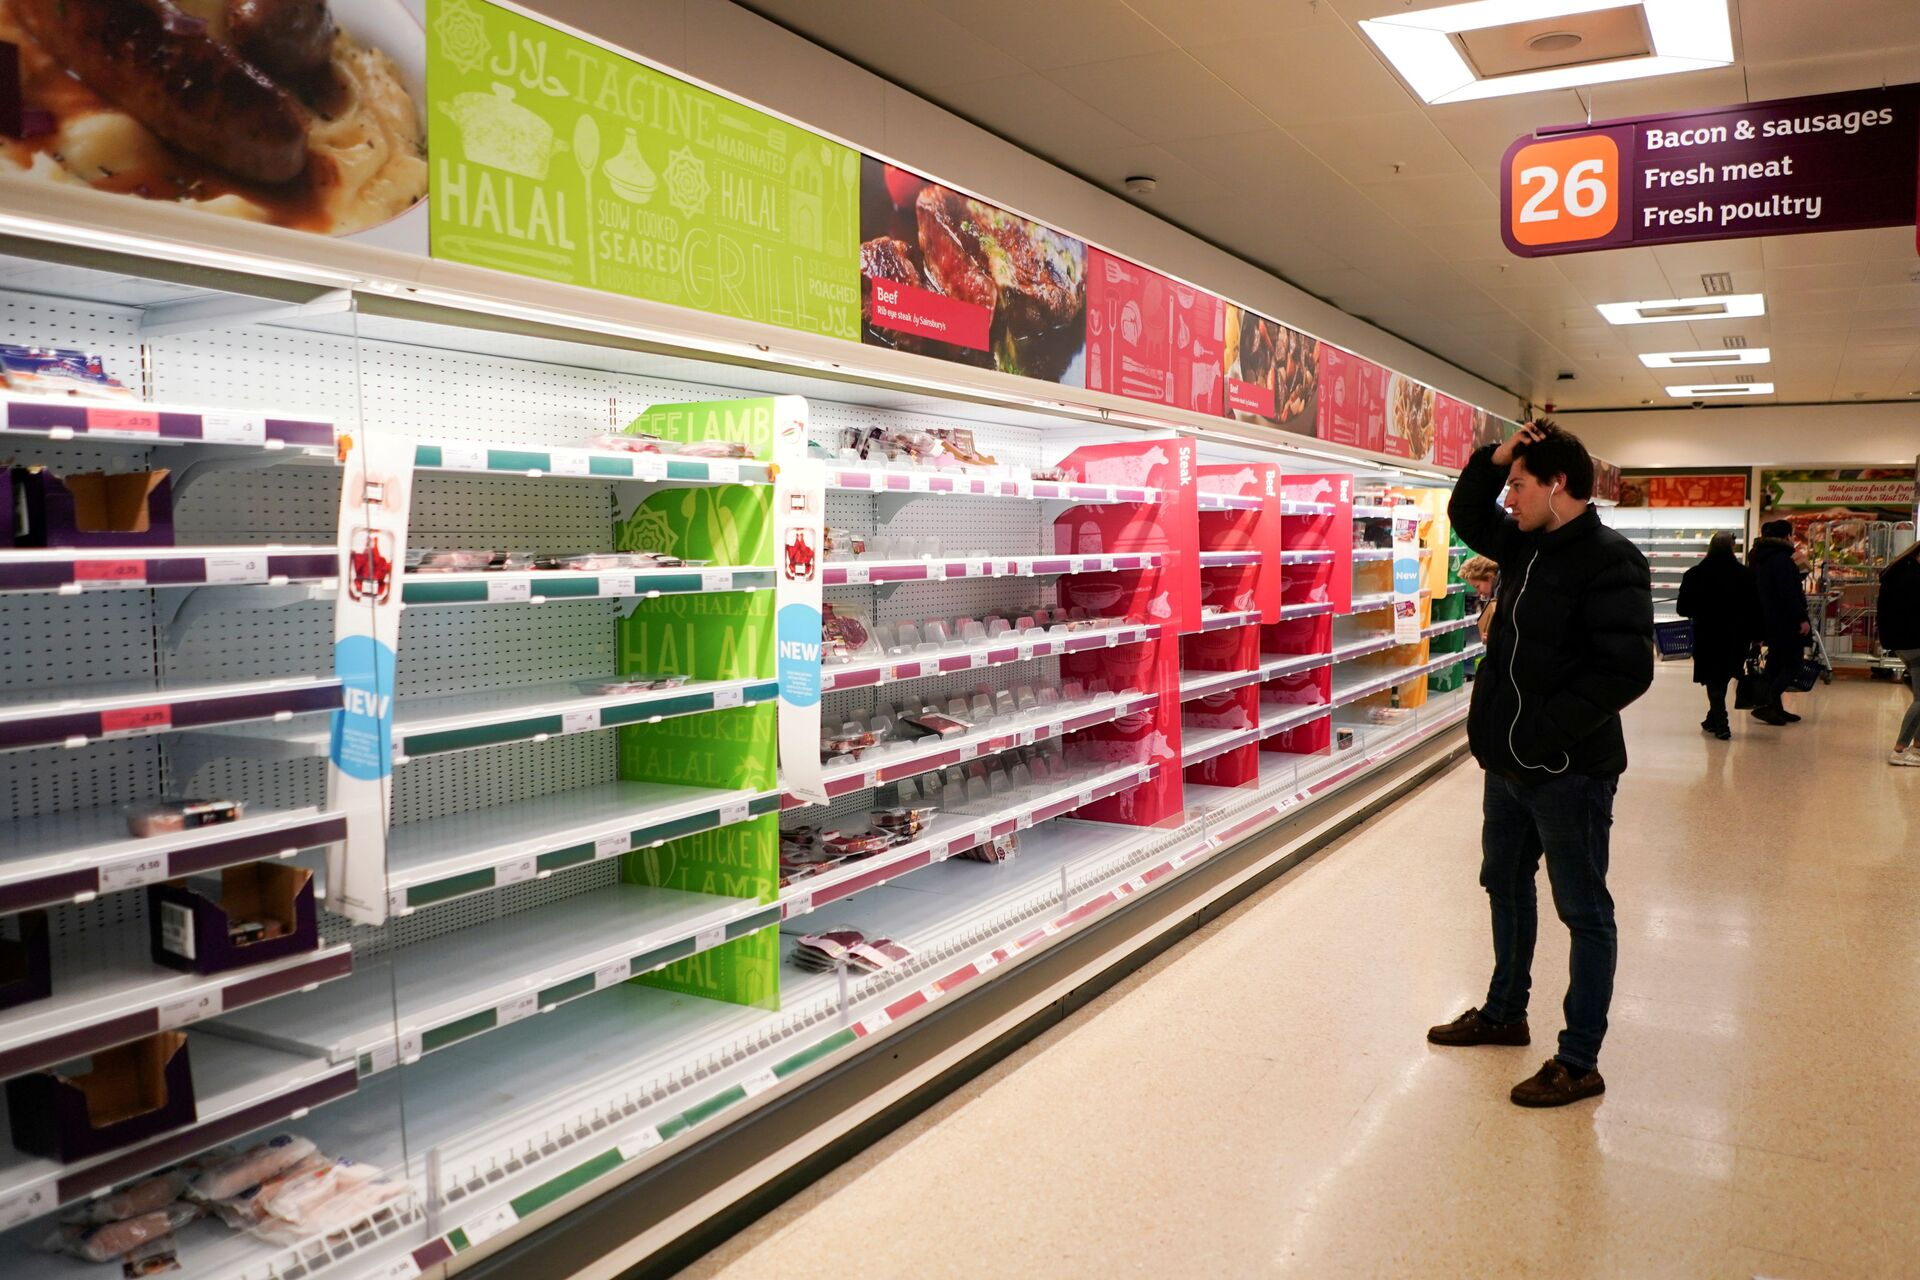 FILE PHOTO: A man stands next to shelves empty of fresh meat in a supermarket, as the number of worldwide coronavirus cases continues to grow,  in London, Britain, March 15, 2020 - Sputnik International, 1920, 07.09.2021